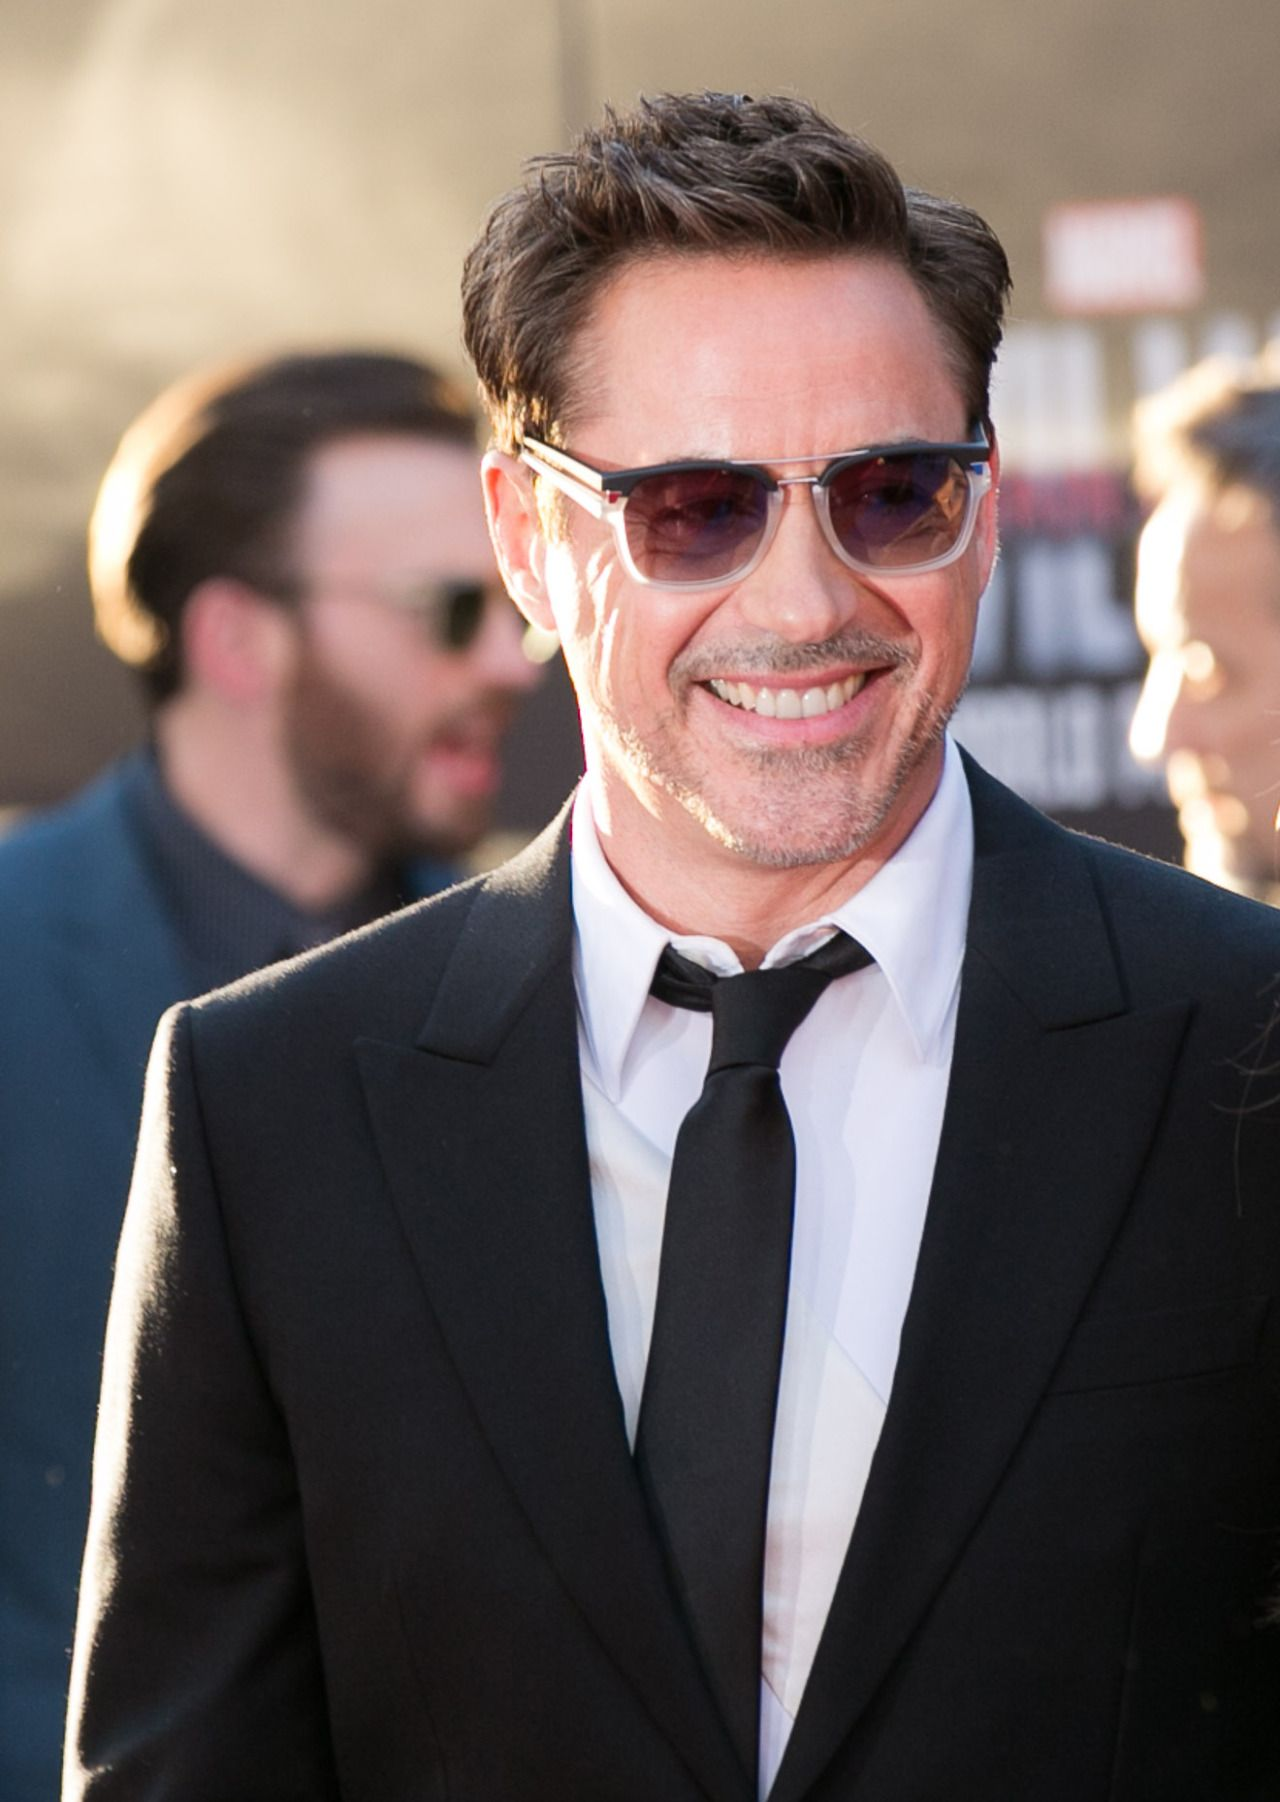 Robert downey jr attends the premiere of marvels